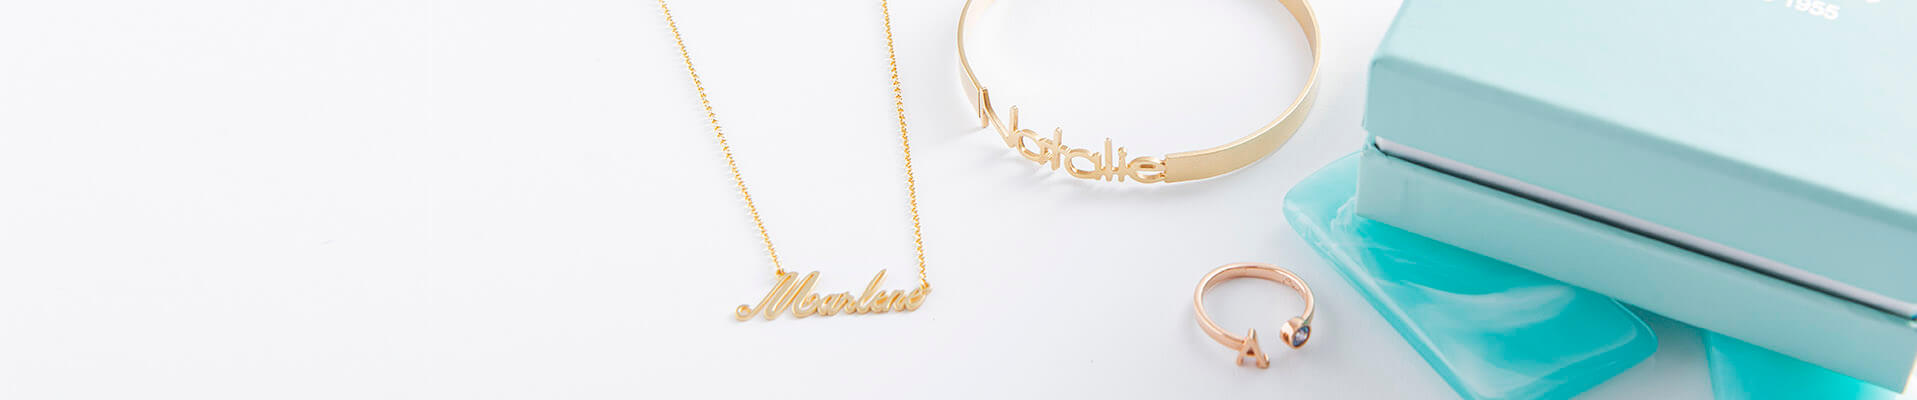 name jewelry web bannner